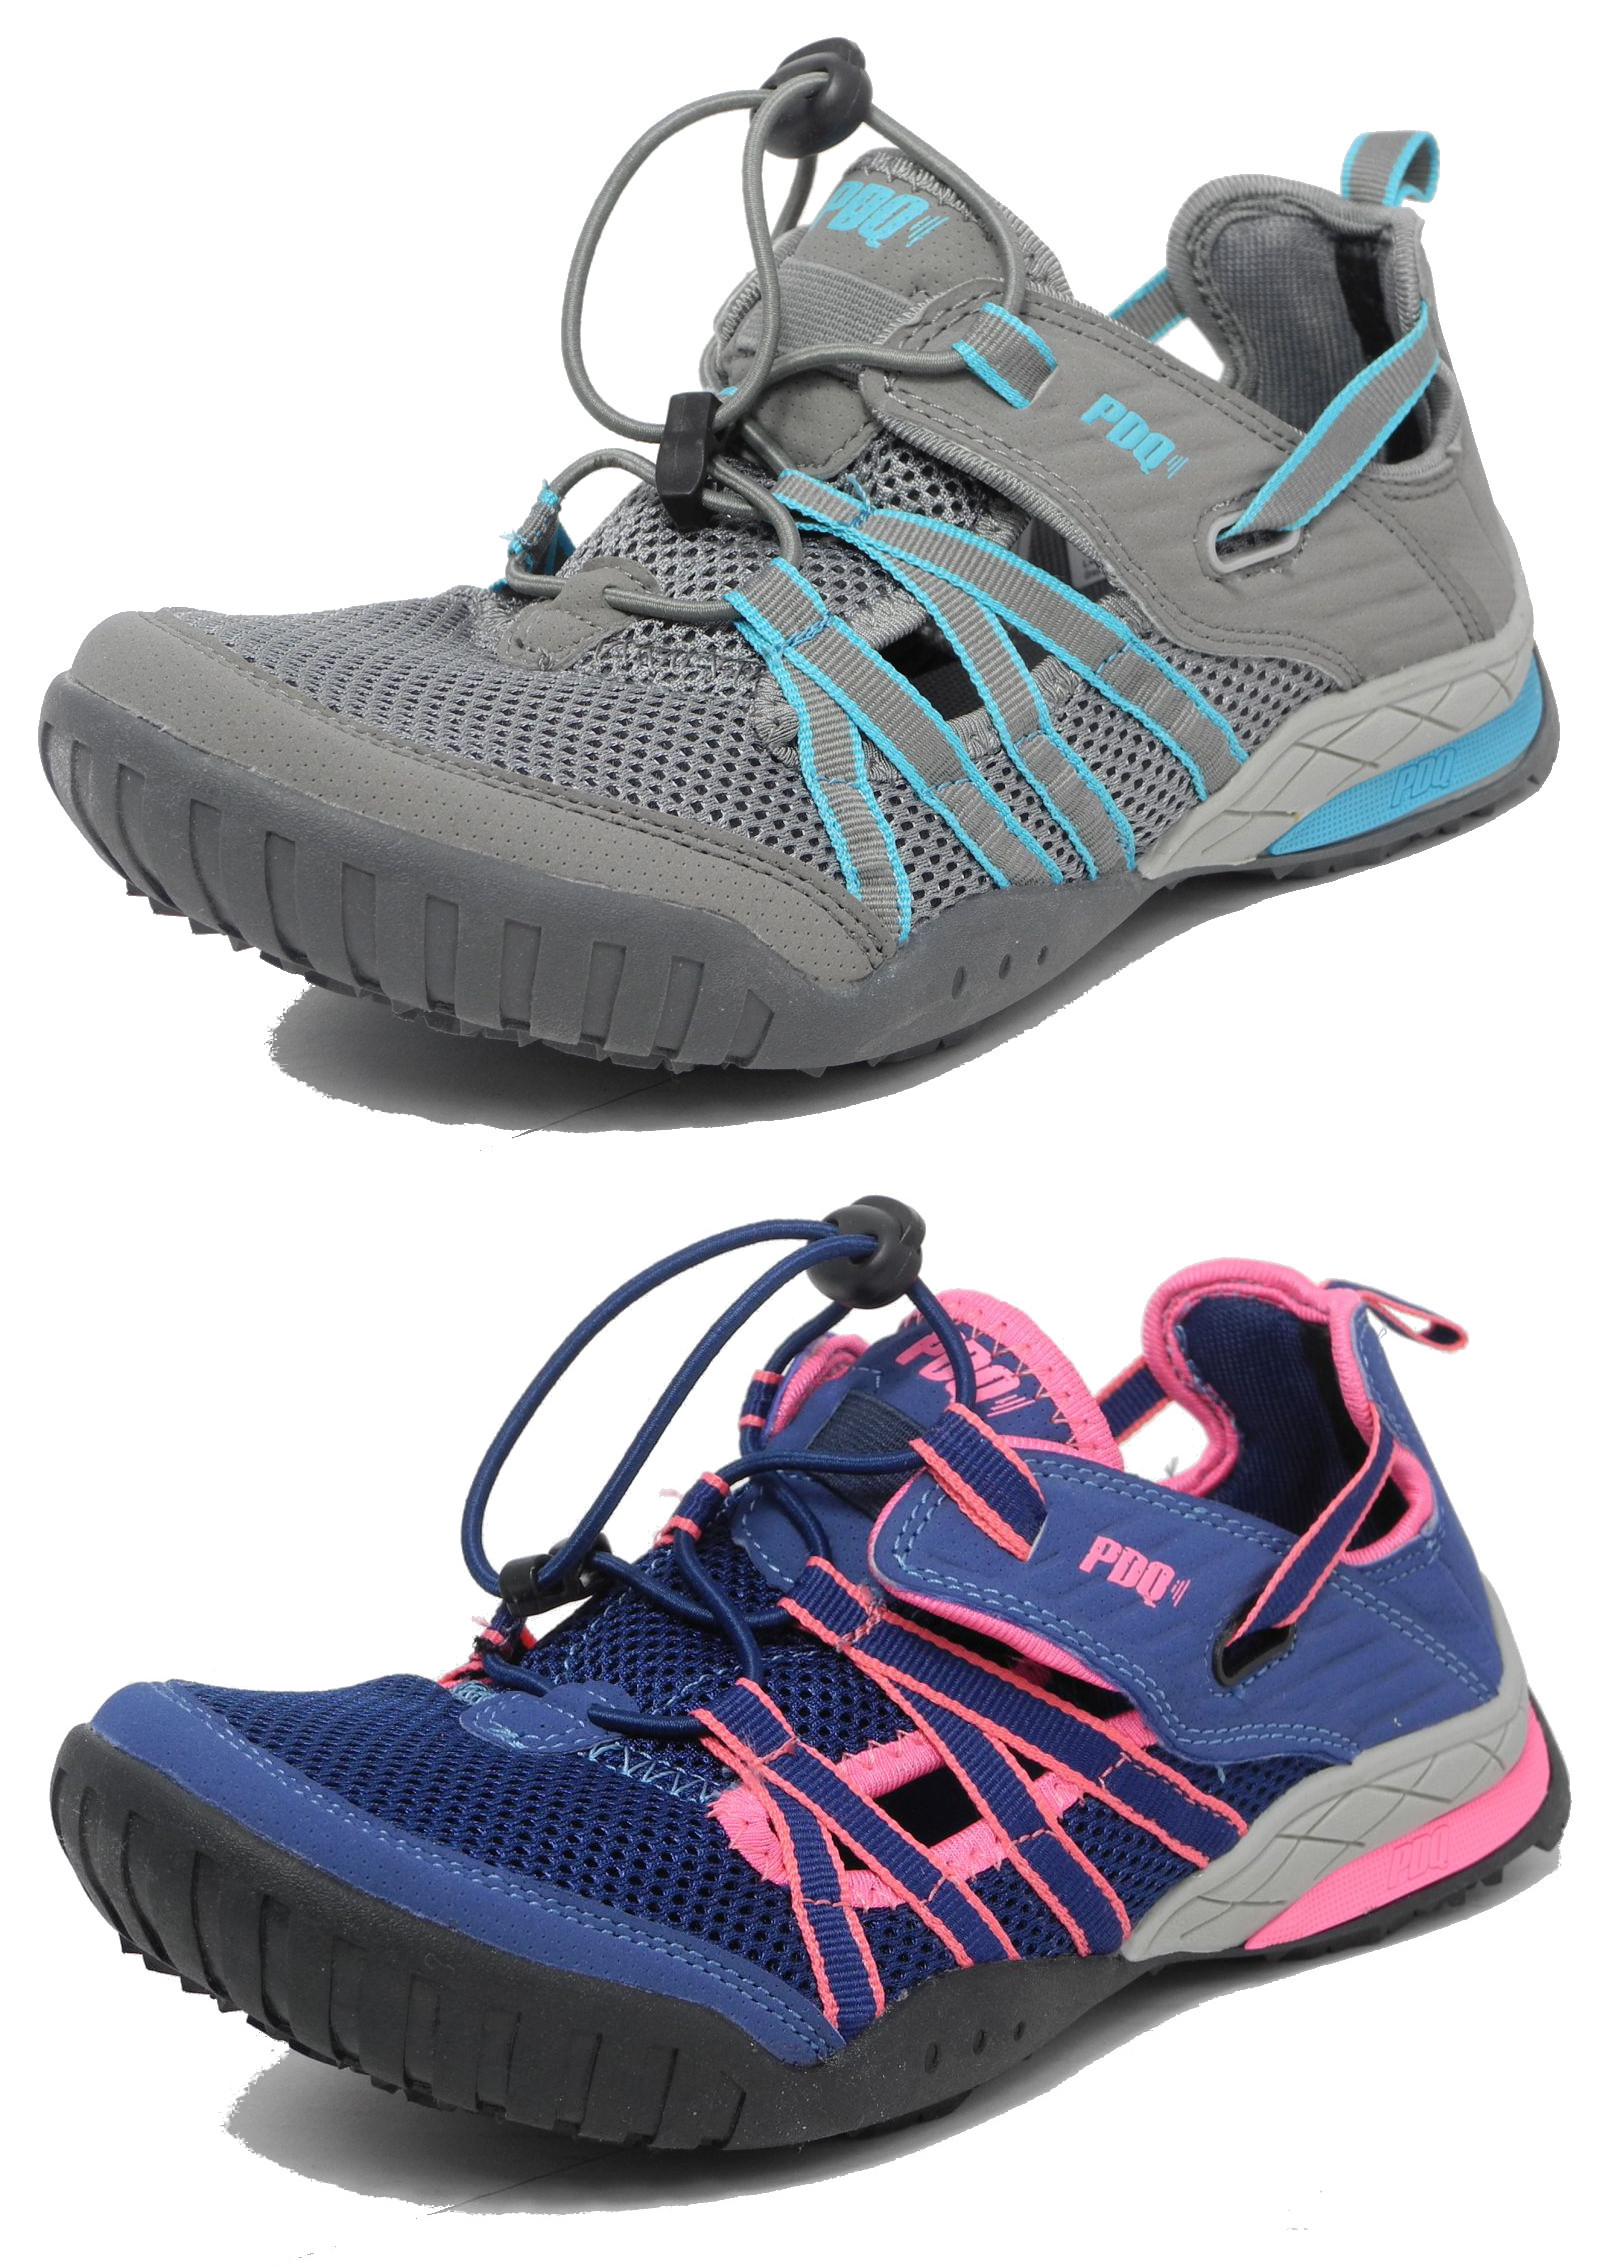 How To Lace Shoes For High Instep